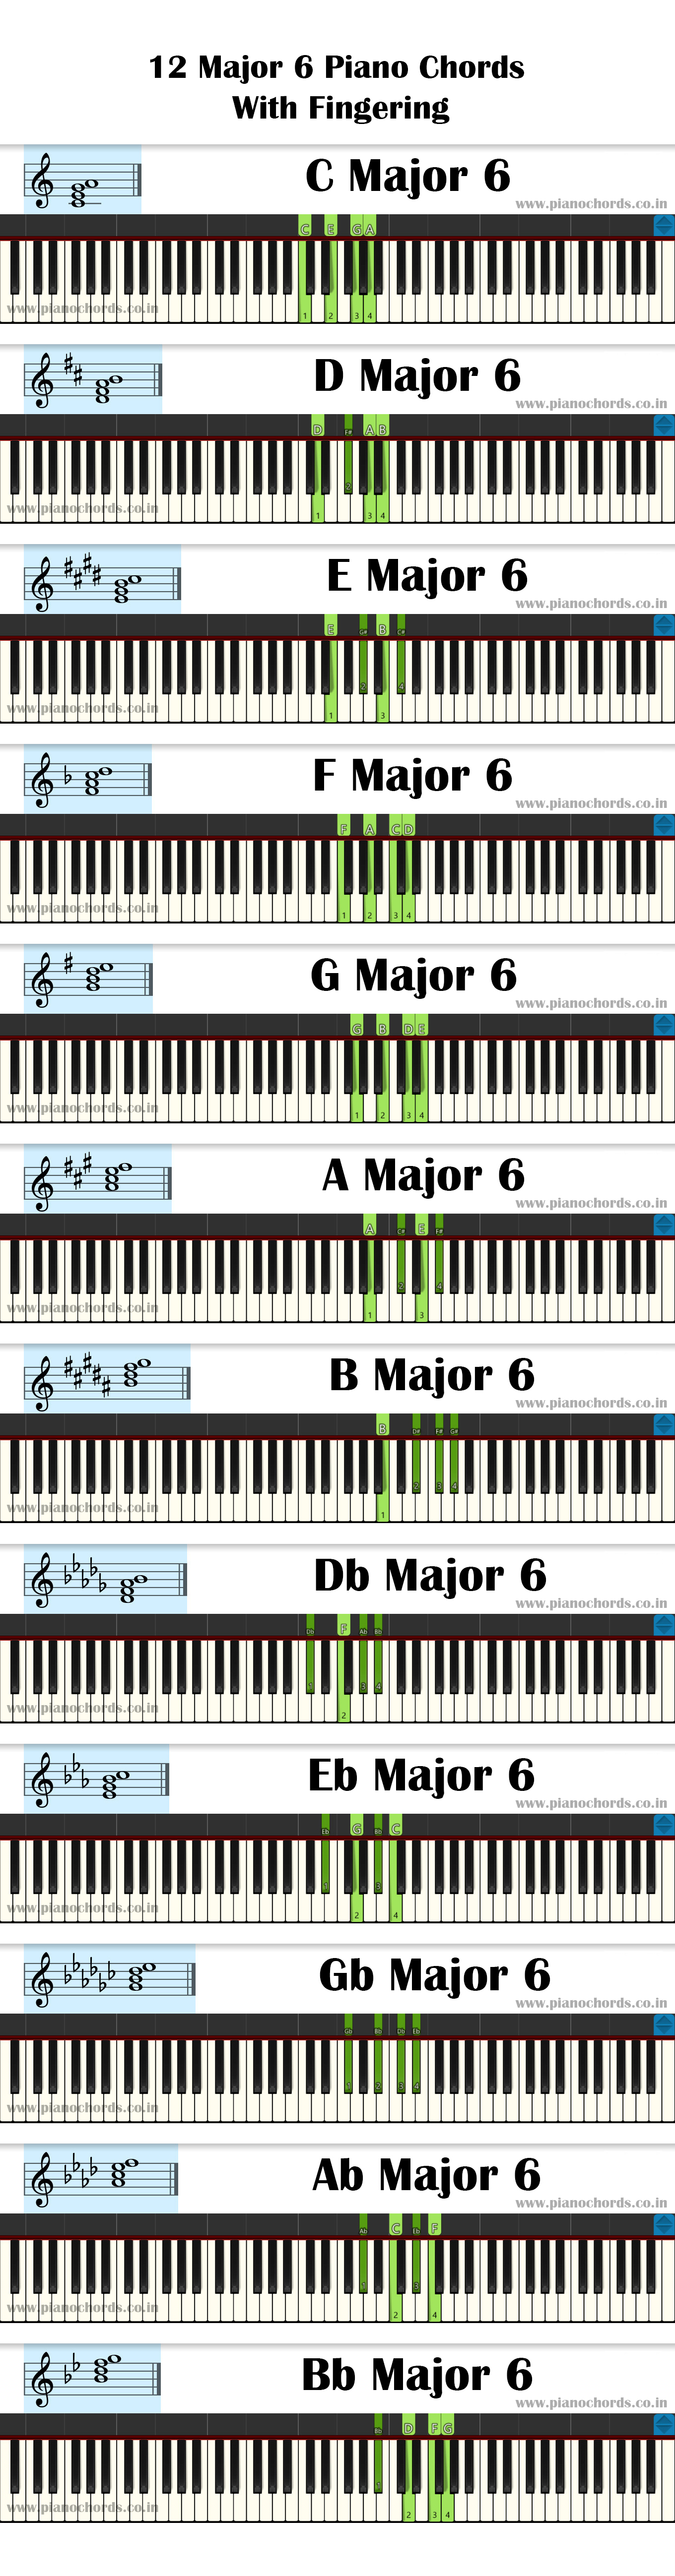 12 Major 6 Piano Chords With Fingering, Diagram, Staff Notation